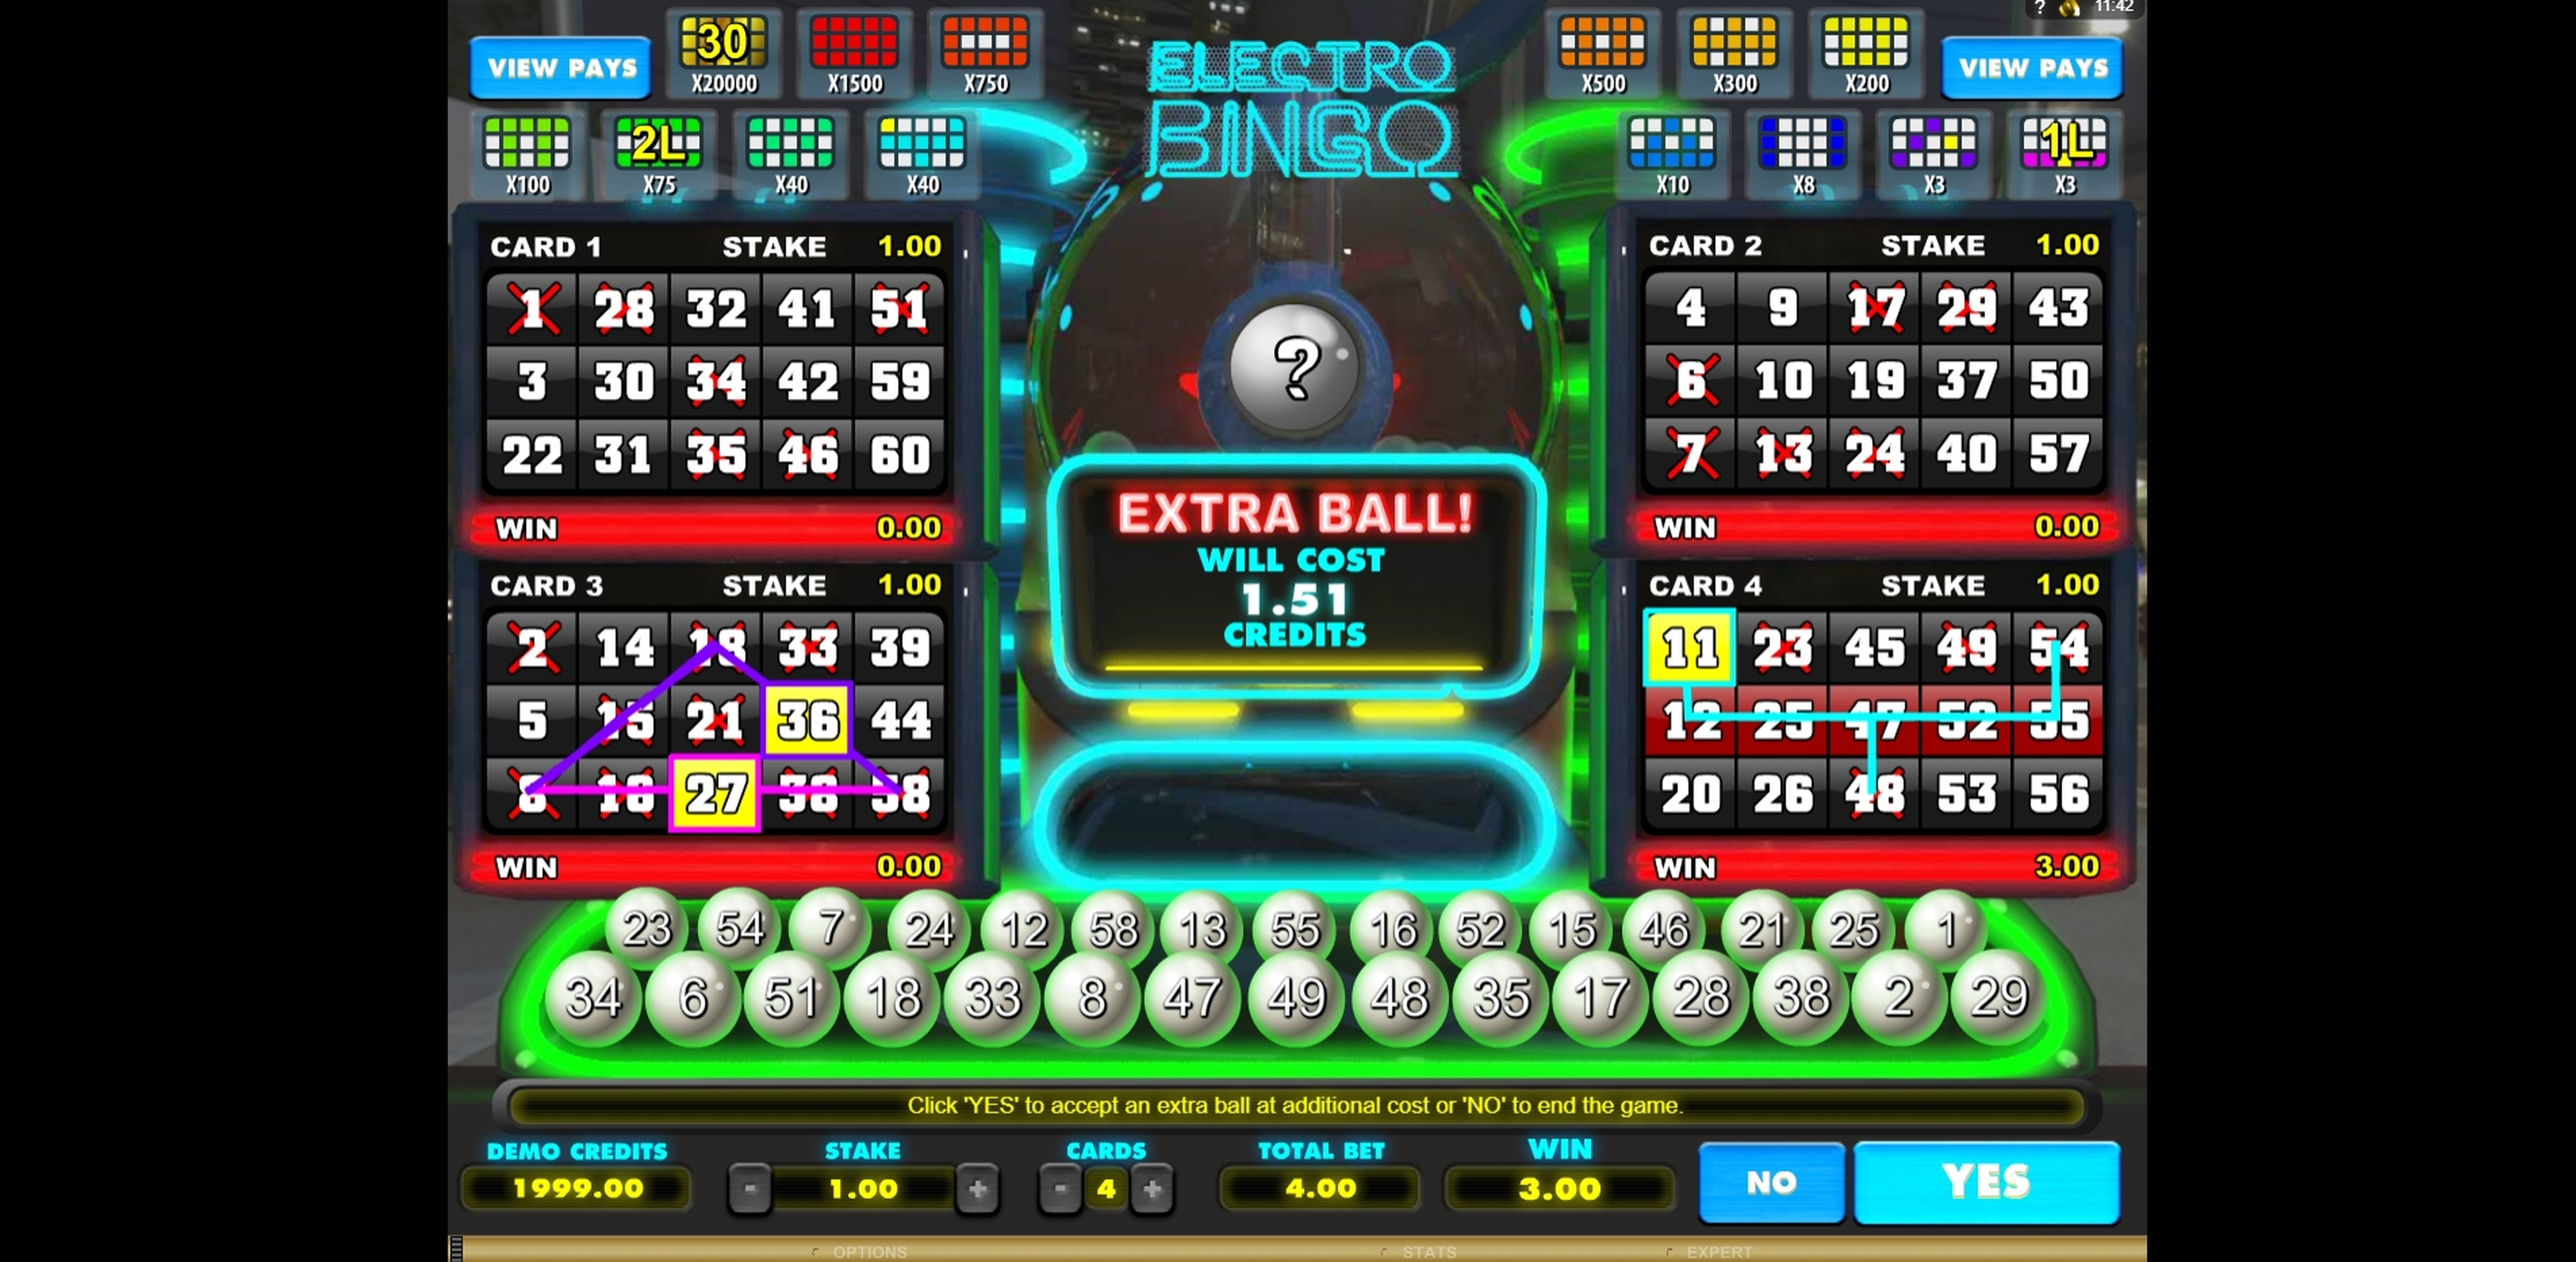 Win Money in Electro Bingo Free Slot Game by Microgaming